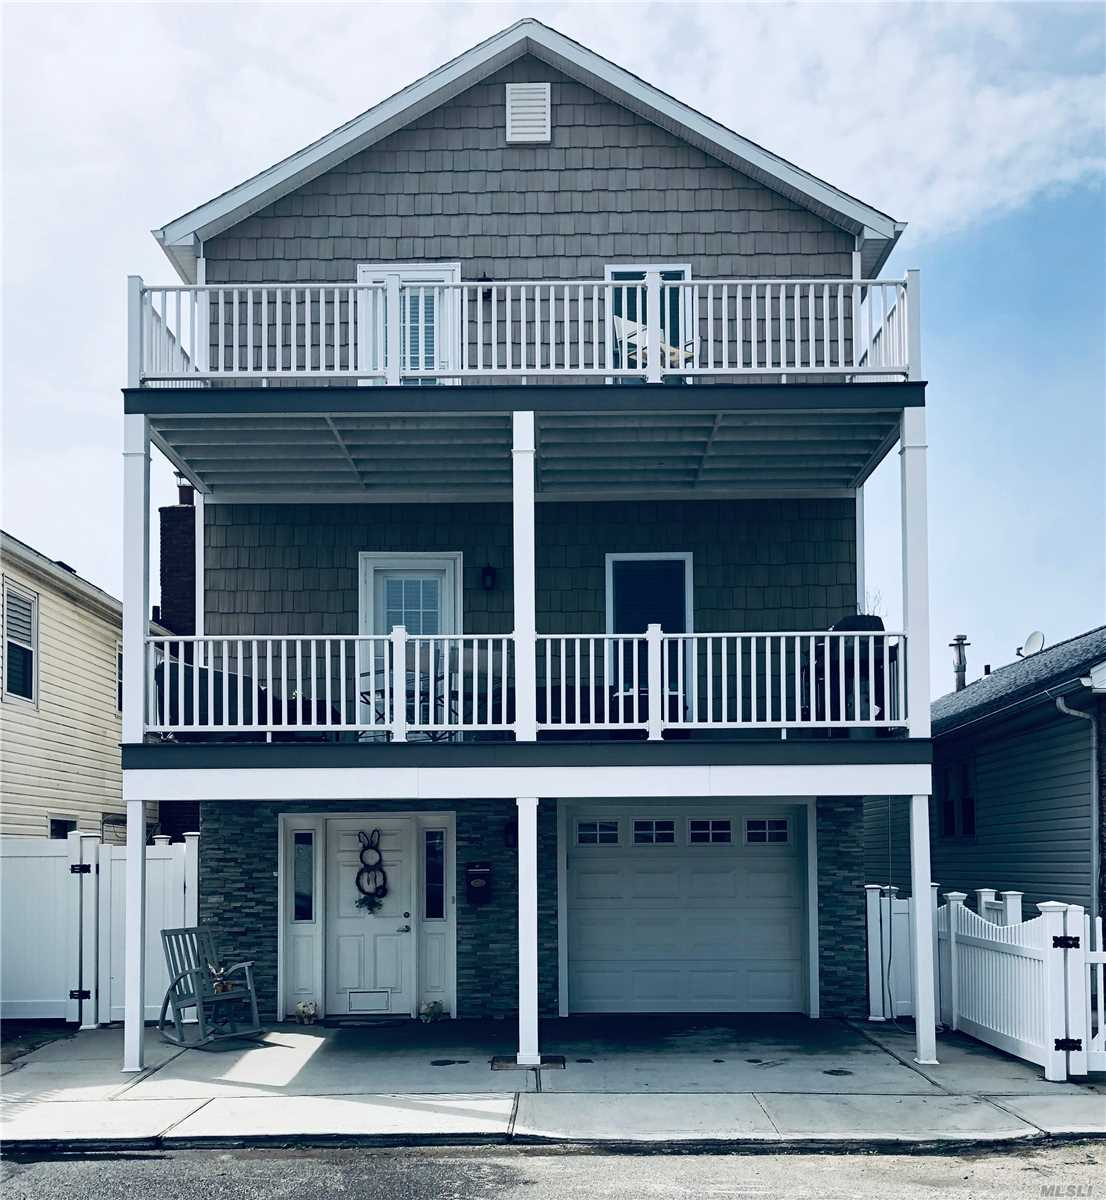 Whole House Rental in the West End of Long Beach, NY. Beach Side Living Home Offers Proximity to Beach, Completely Updated, and Parking for Up to 4 Cars! Ground Floor: Garage and Office Space. 1st Floor: Eat in Kitchen with Stainless Steel Appliances, Formal Dining Room, Bedroom, Powder Room, and Deck w/ Weber Propane Grill. 2nd Floor: Master Bedroom w/ Bathroom, 2 Bedrooms, Bathroom and Deck. Washer and Dryer, Central Air Conditioning. Wide Block. Steps to Beach, Restaurants, Boutiques, & More!